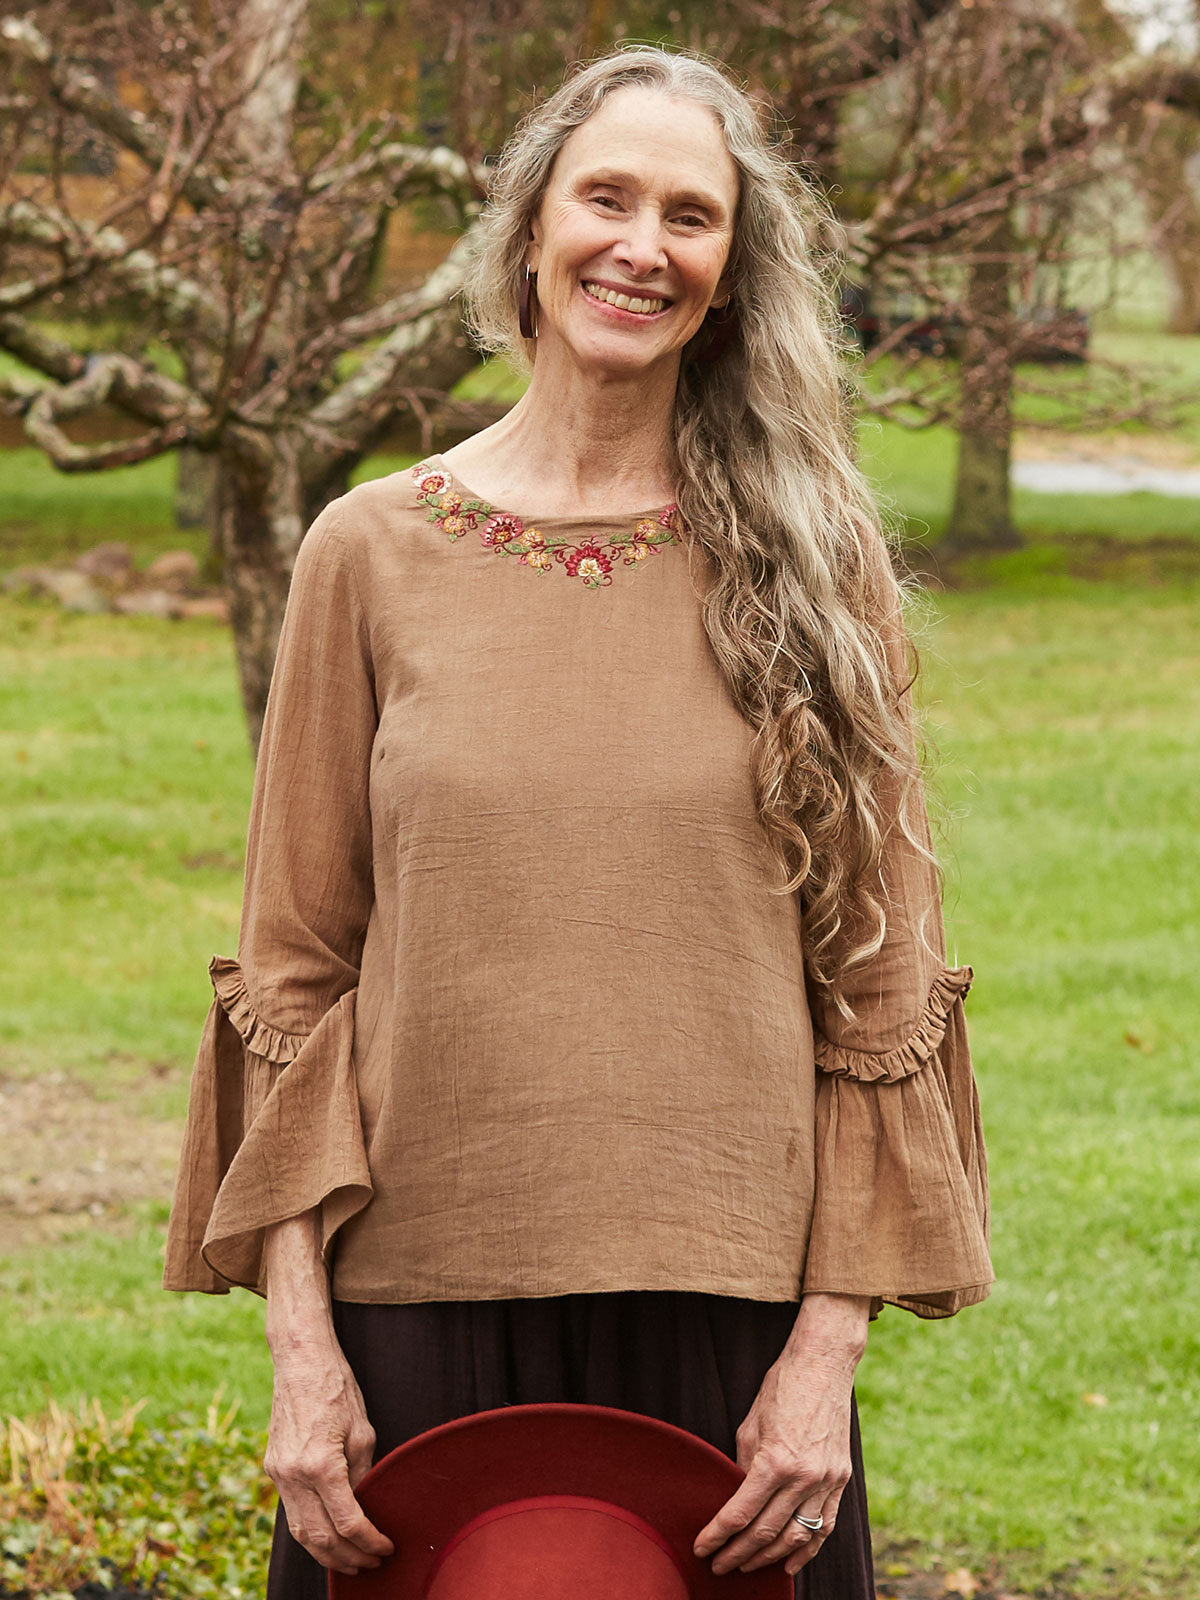 Woodland Sister Blouse